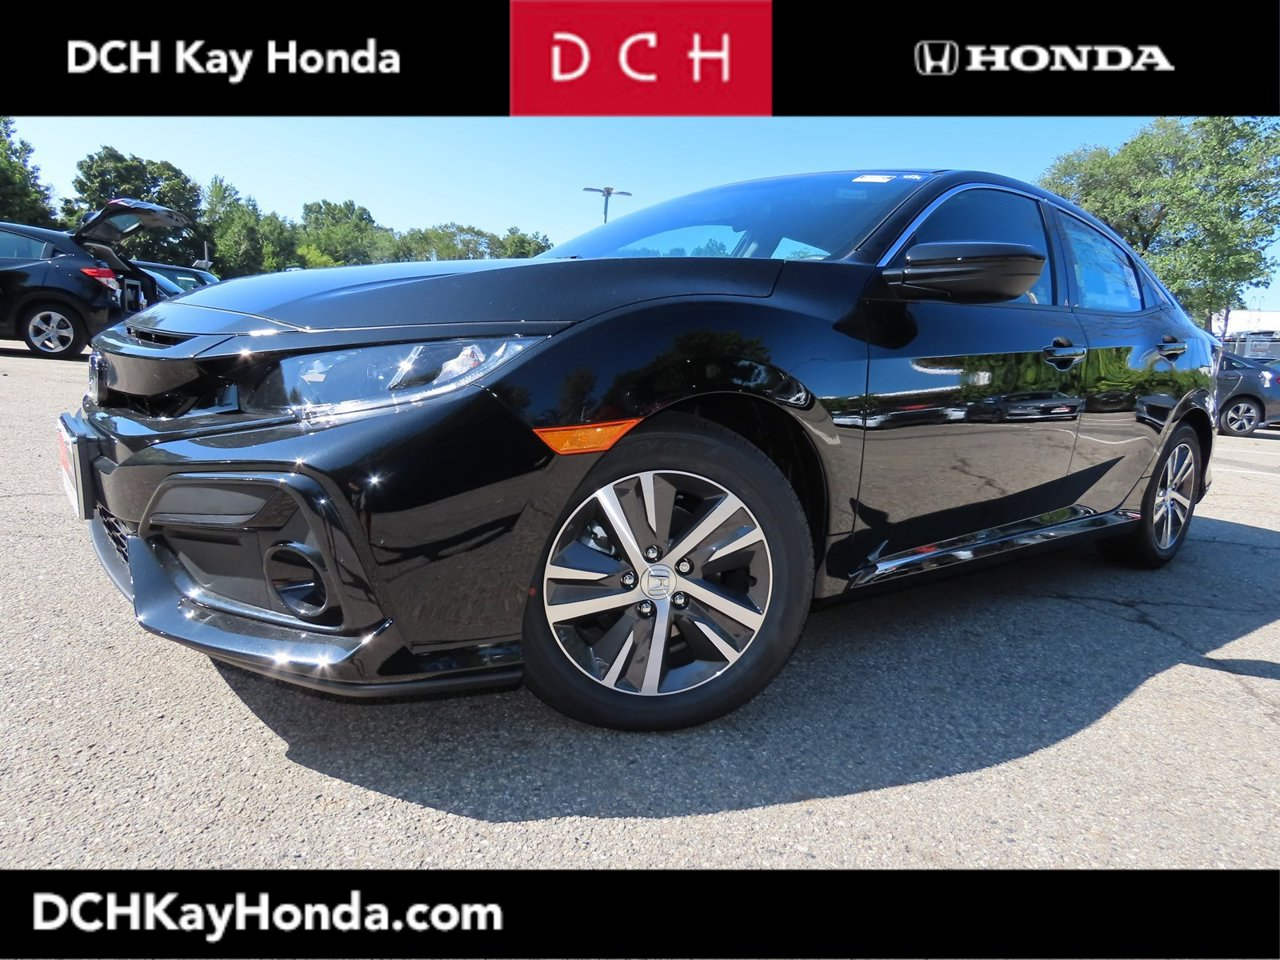 New 2020 Honda Civic Hatchback in Eatontown, NJ